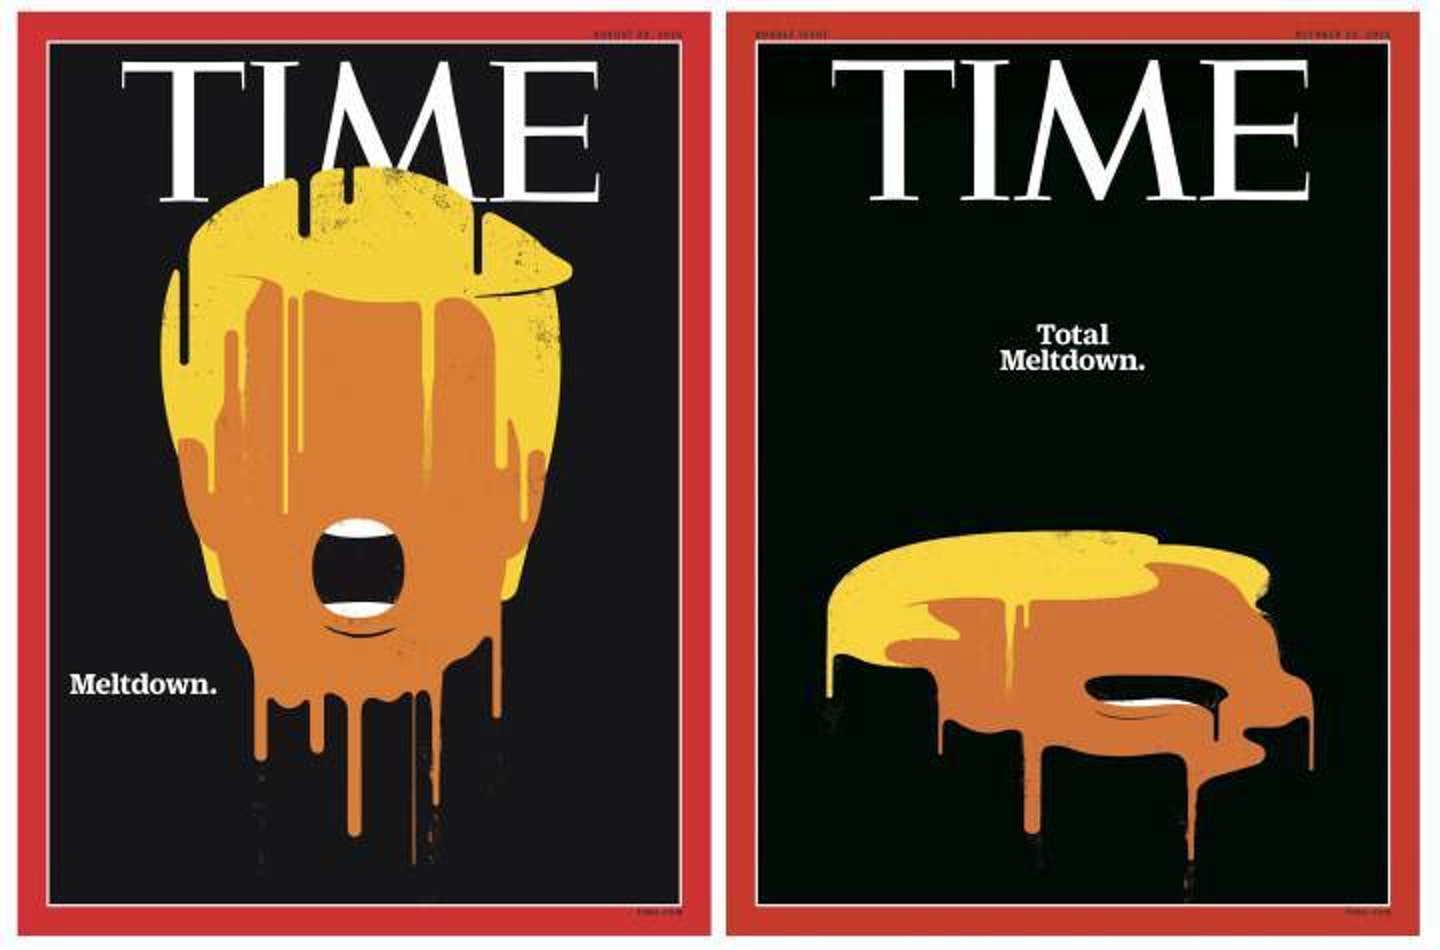 'Time' thought Trump was a droopy mess, not a meteor.